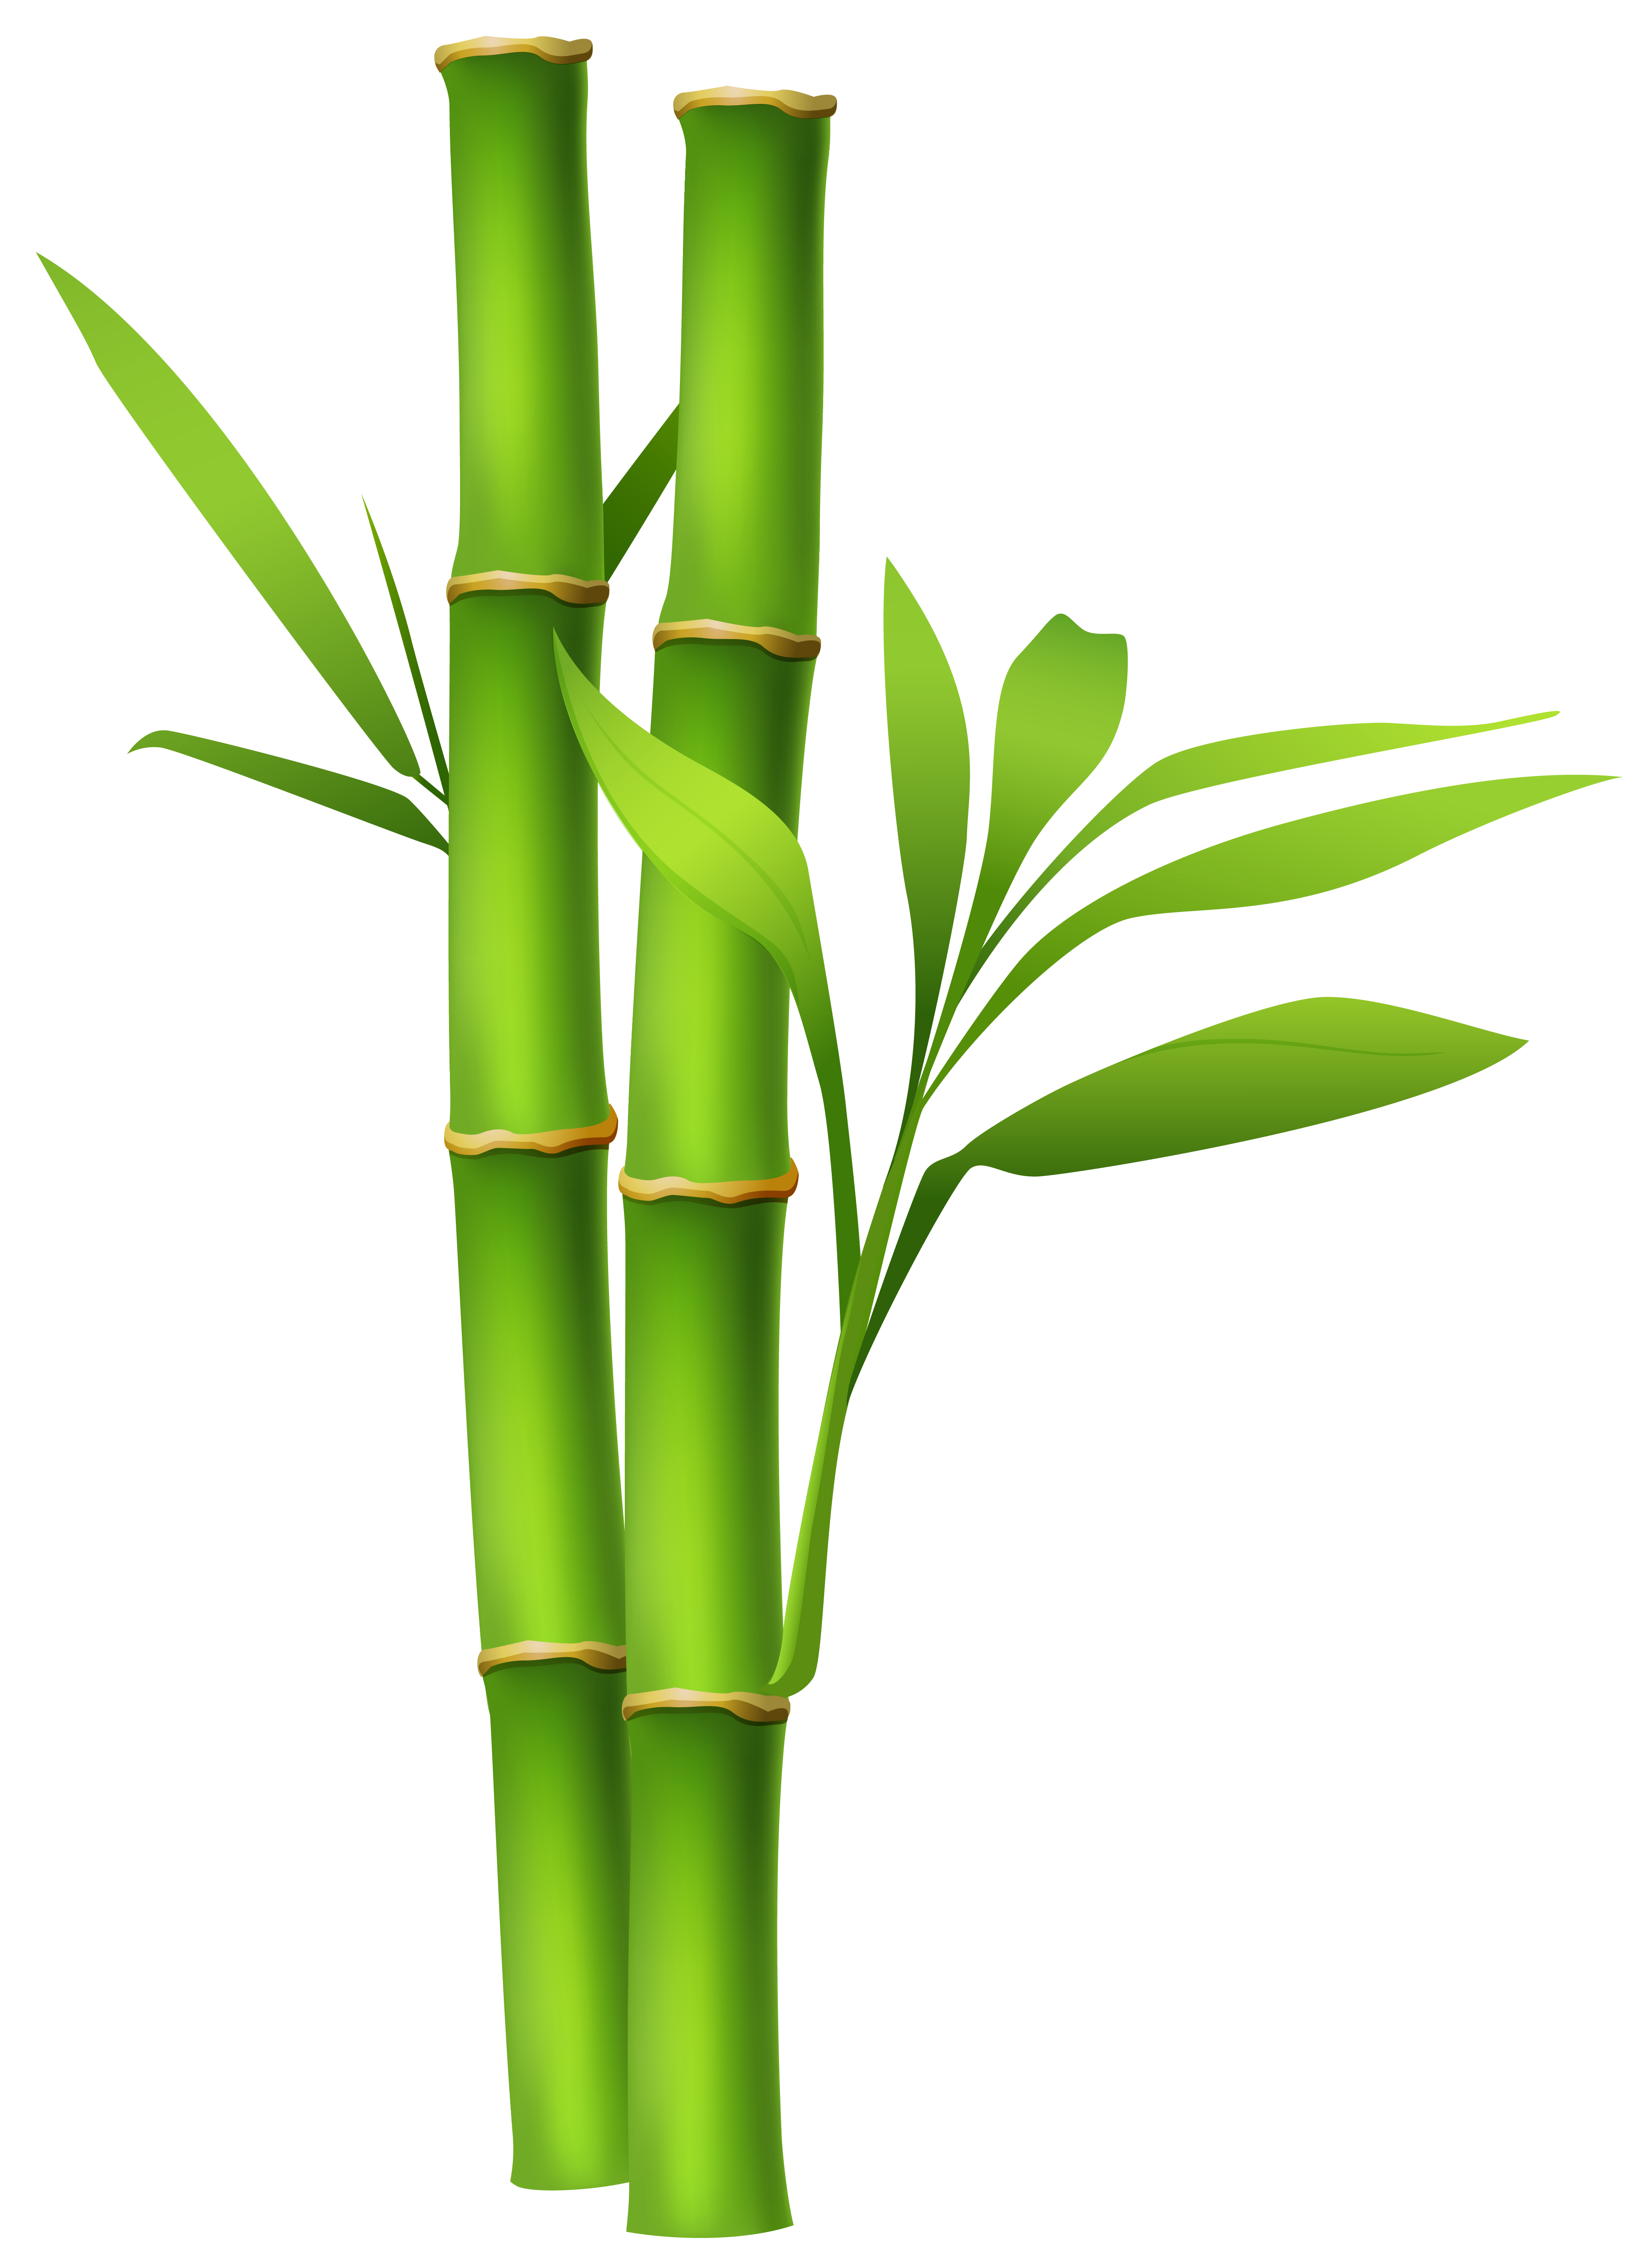 jpg library stock Bamboo clipart. Png image gallery yopriceville.